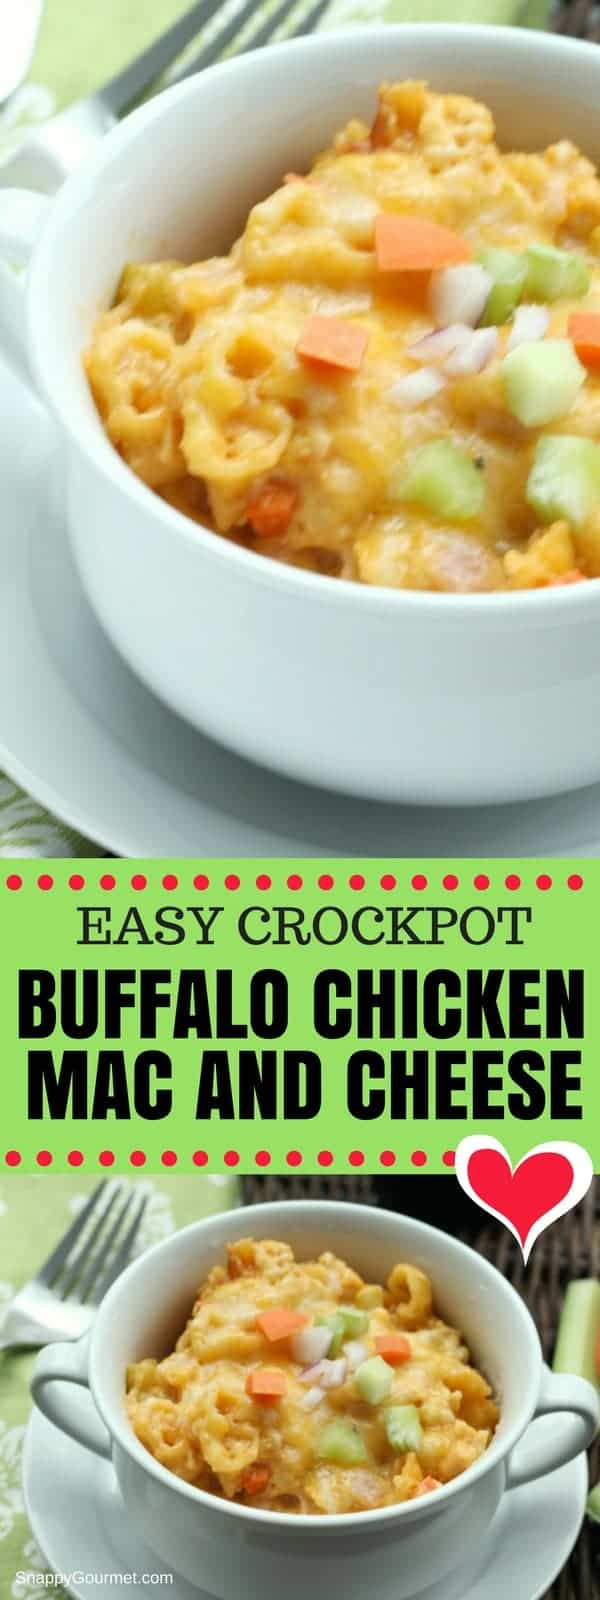 Buffalo Chicken Mac and Cheese (Crockpot) Recipe - The best easy buffalo chicken macaroni and cheese made in a slow cooker. You don't even have to precook the pasta! It's loaded with chicken, pasta, veggies, cheese, and hot sauce. #Buffalo #Chicken #Crockpot #SnappyGourmet #MacAndCheese #Dinner #DinnerIdeas #Homemade #Spicy #Best #Pasta #SuperBowl